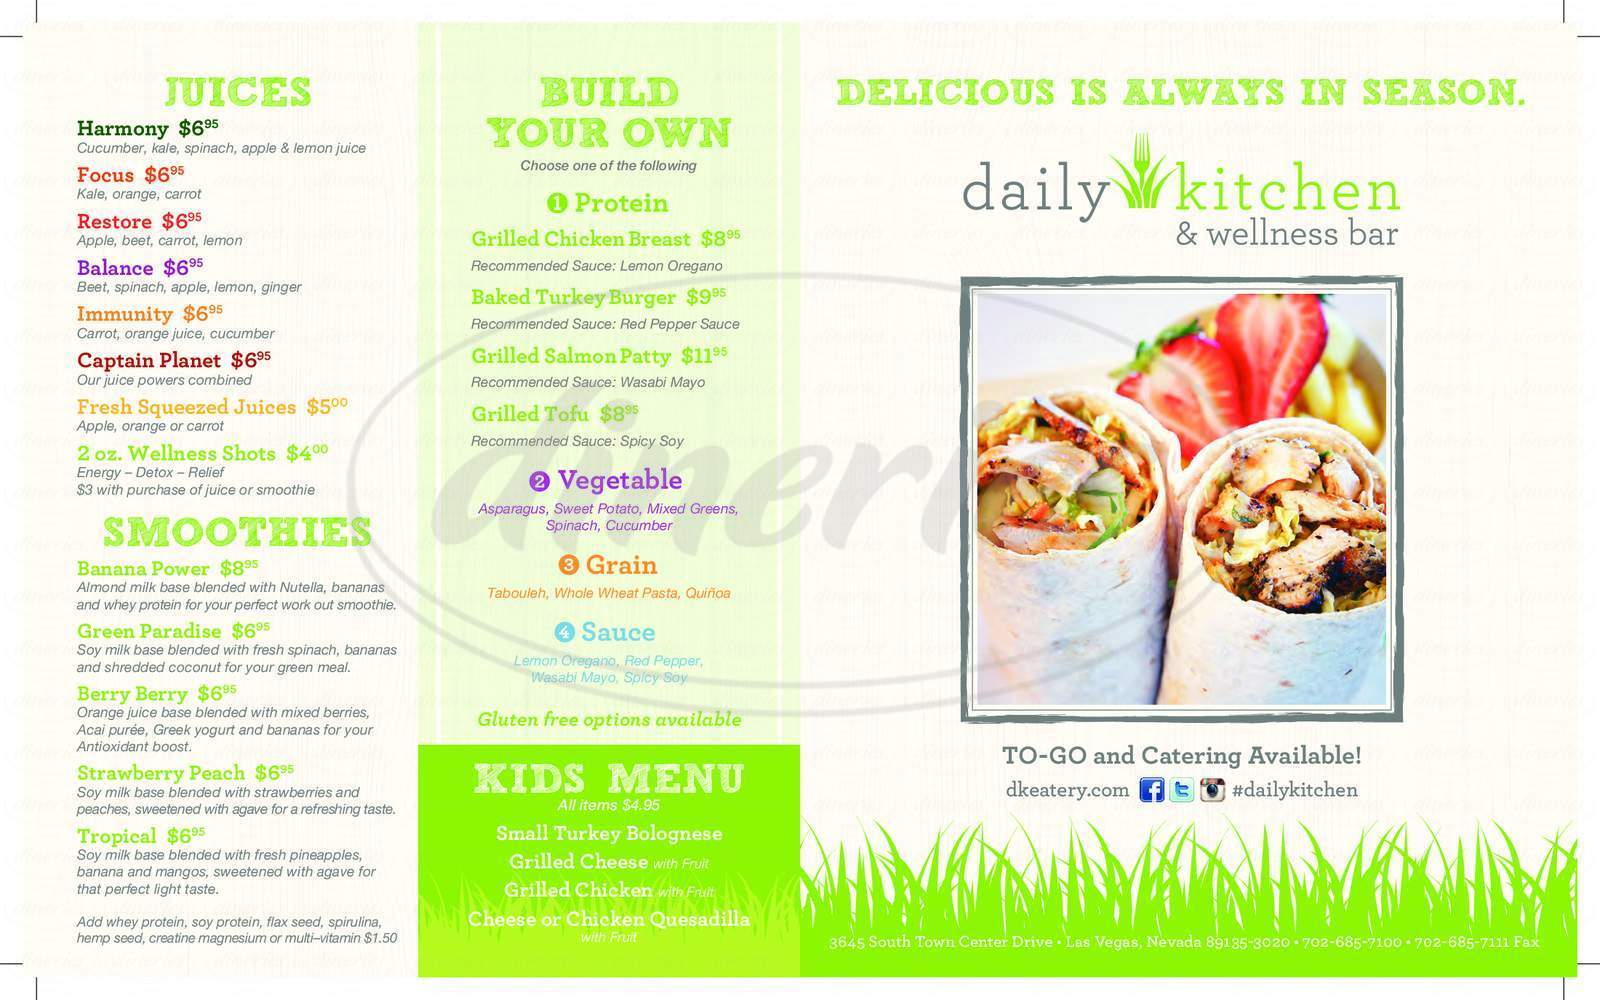 menu for Daily Kitchen and Wellness Bar